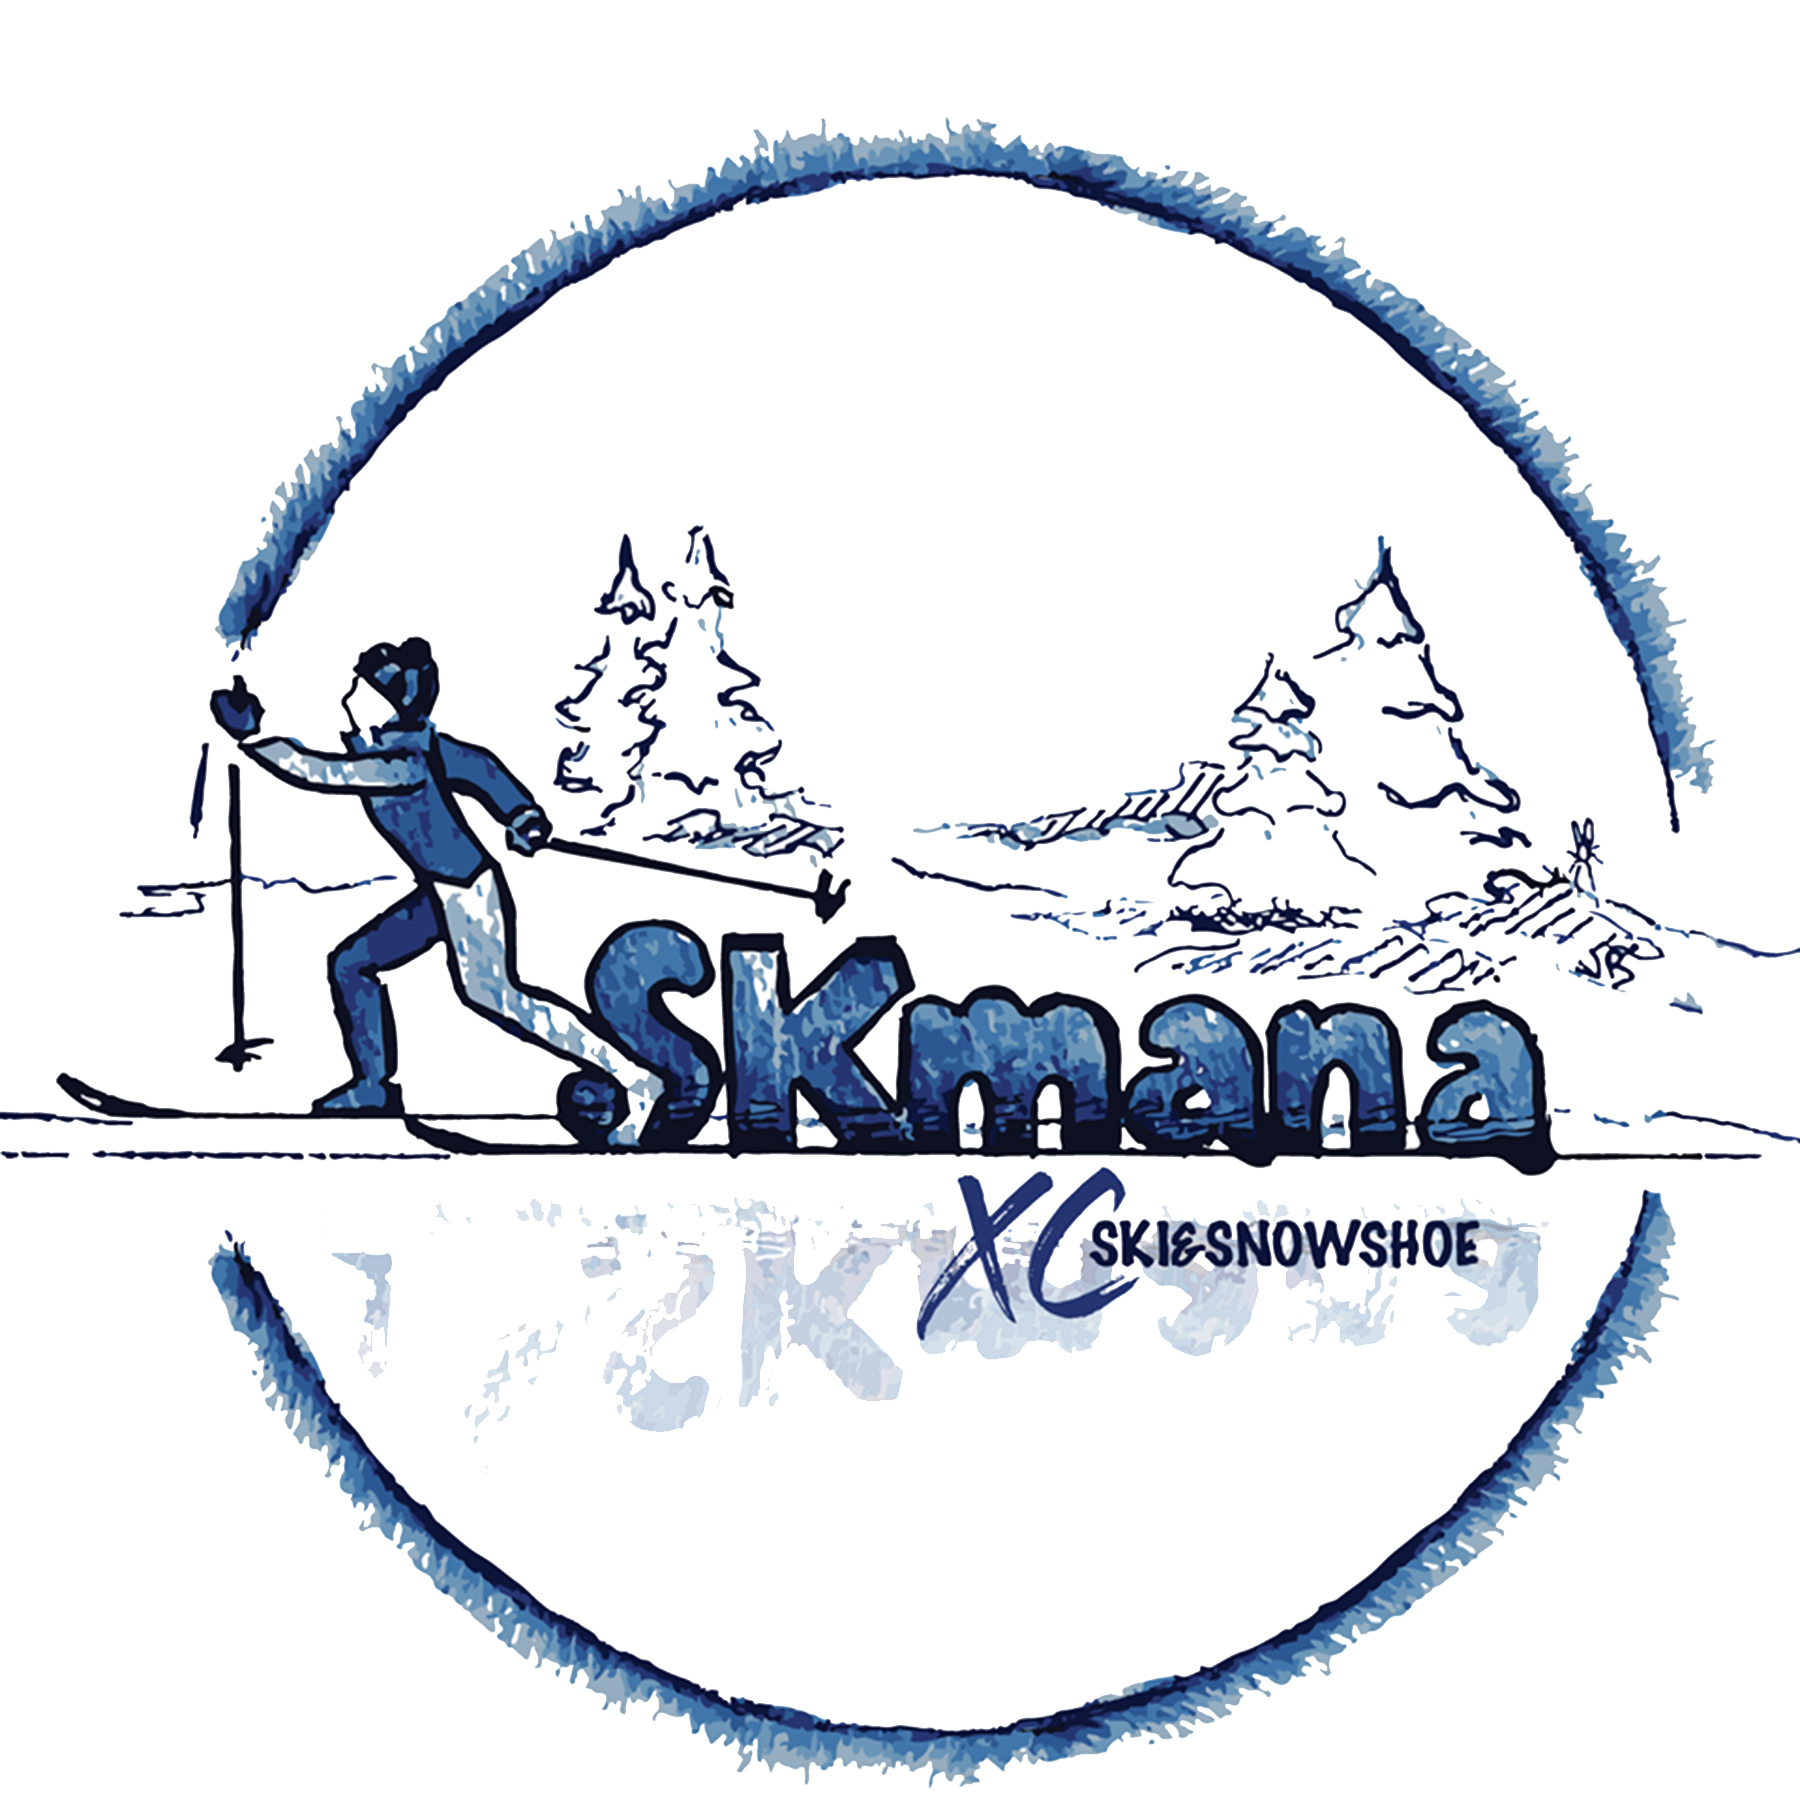 Ski Skmana - X Country & Snowshoe Trails